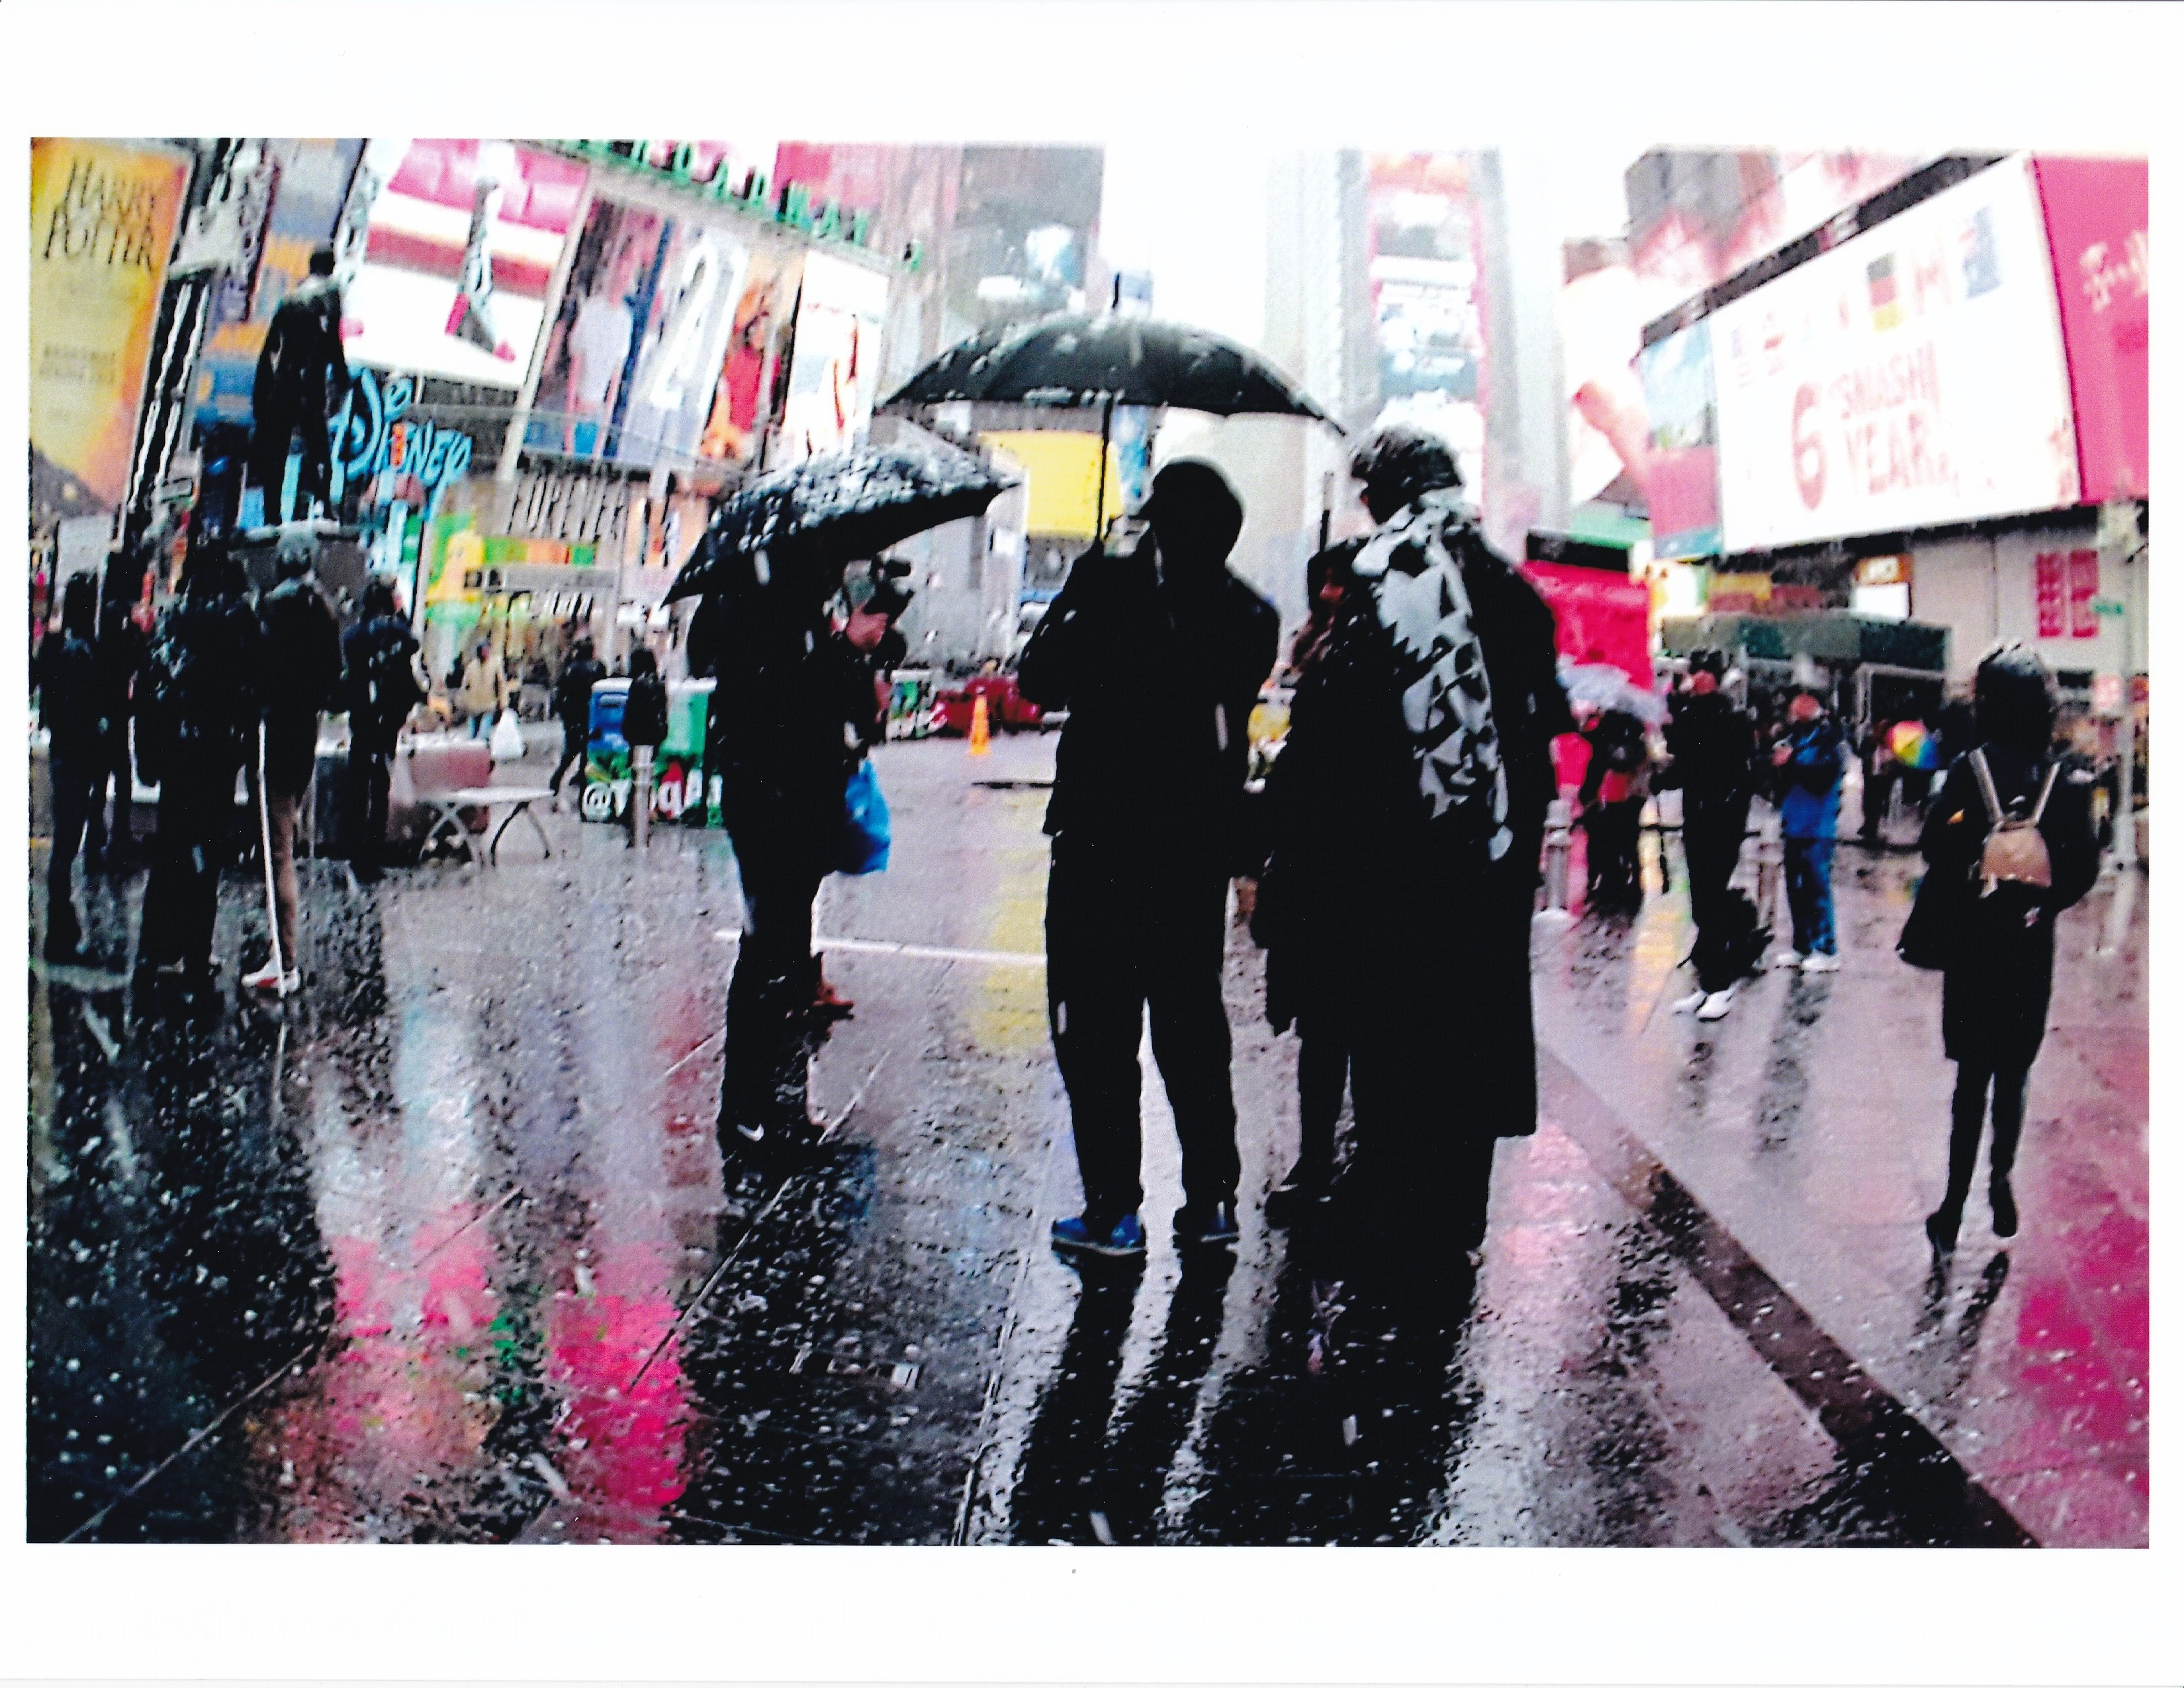 a rainy, atmospheric scene with people holding umbrellas in Times Square